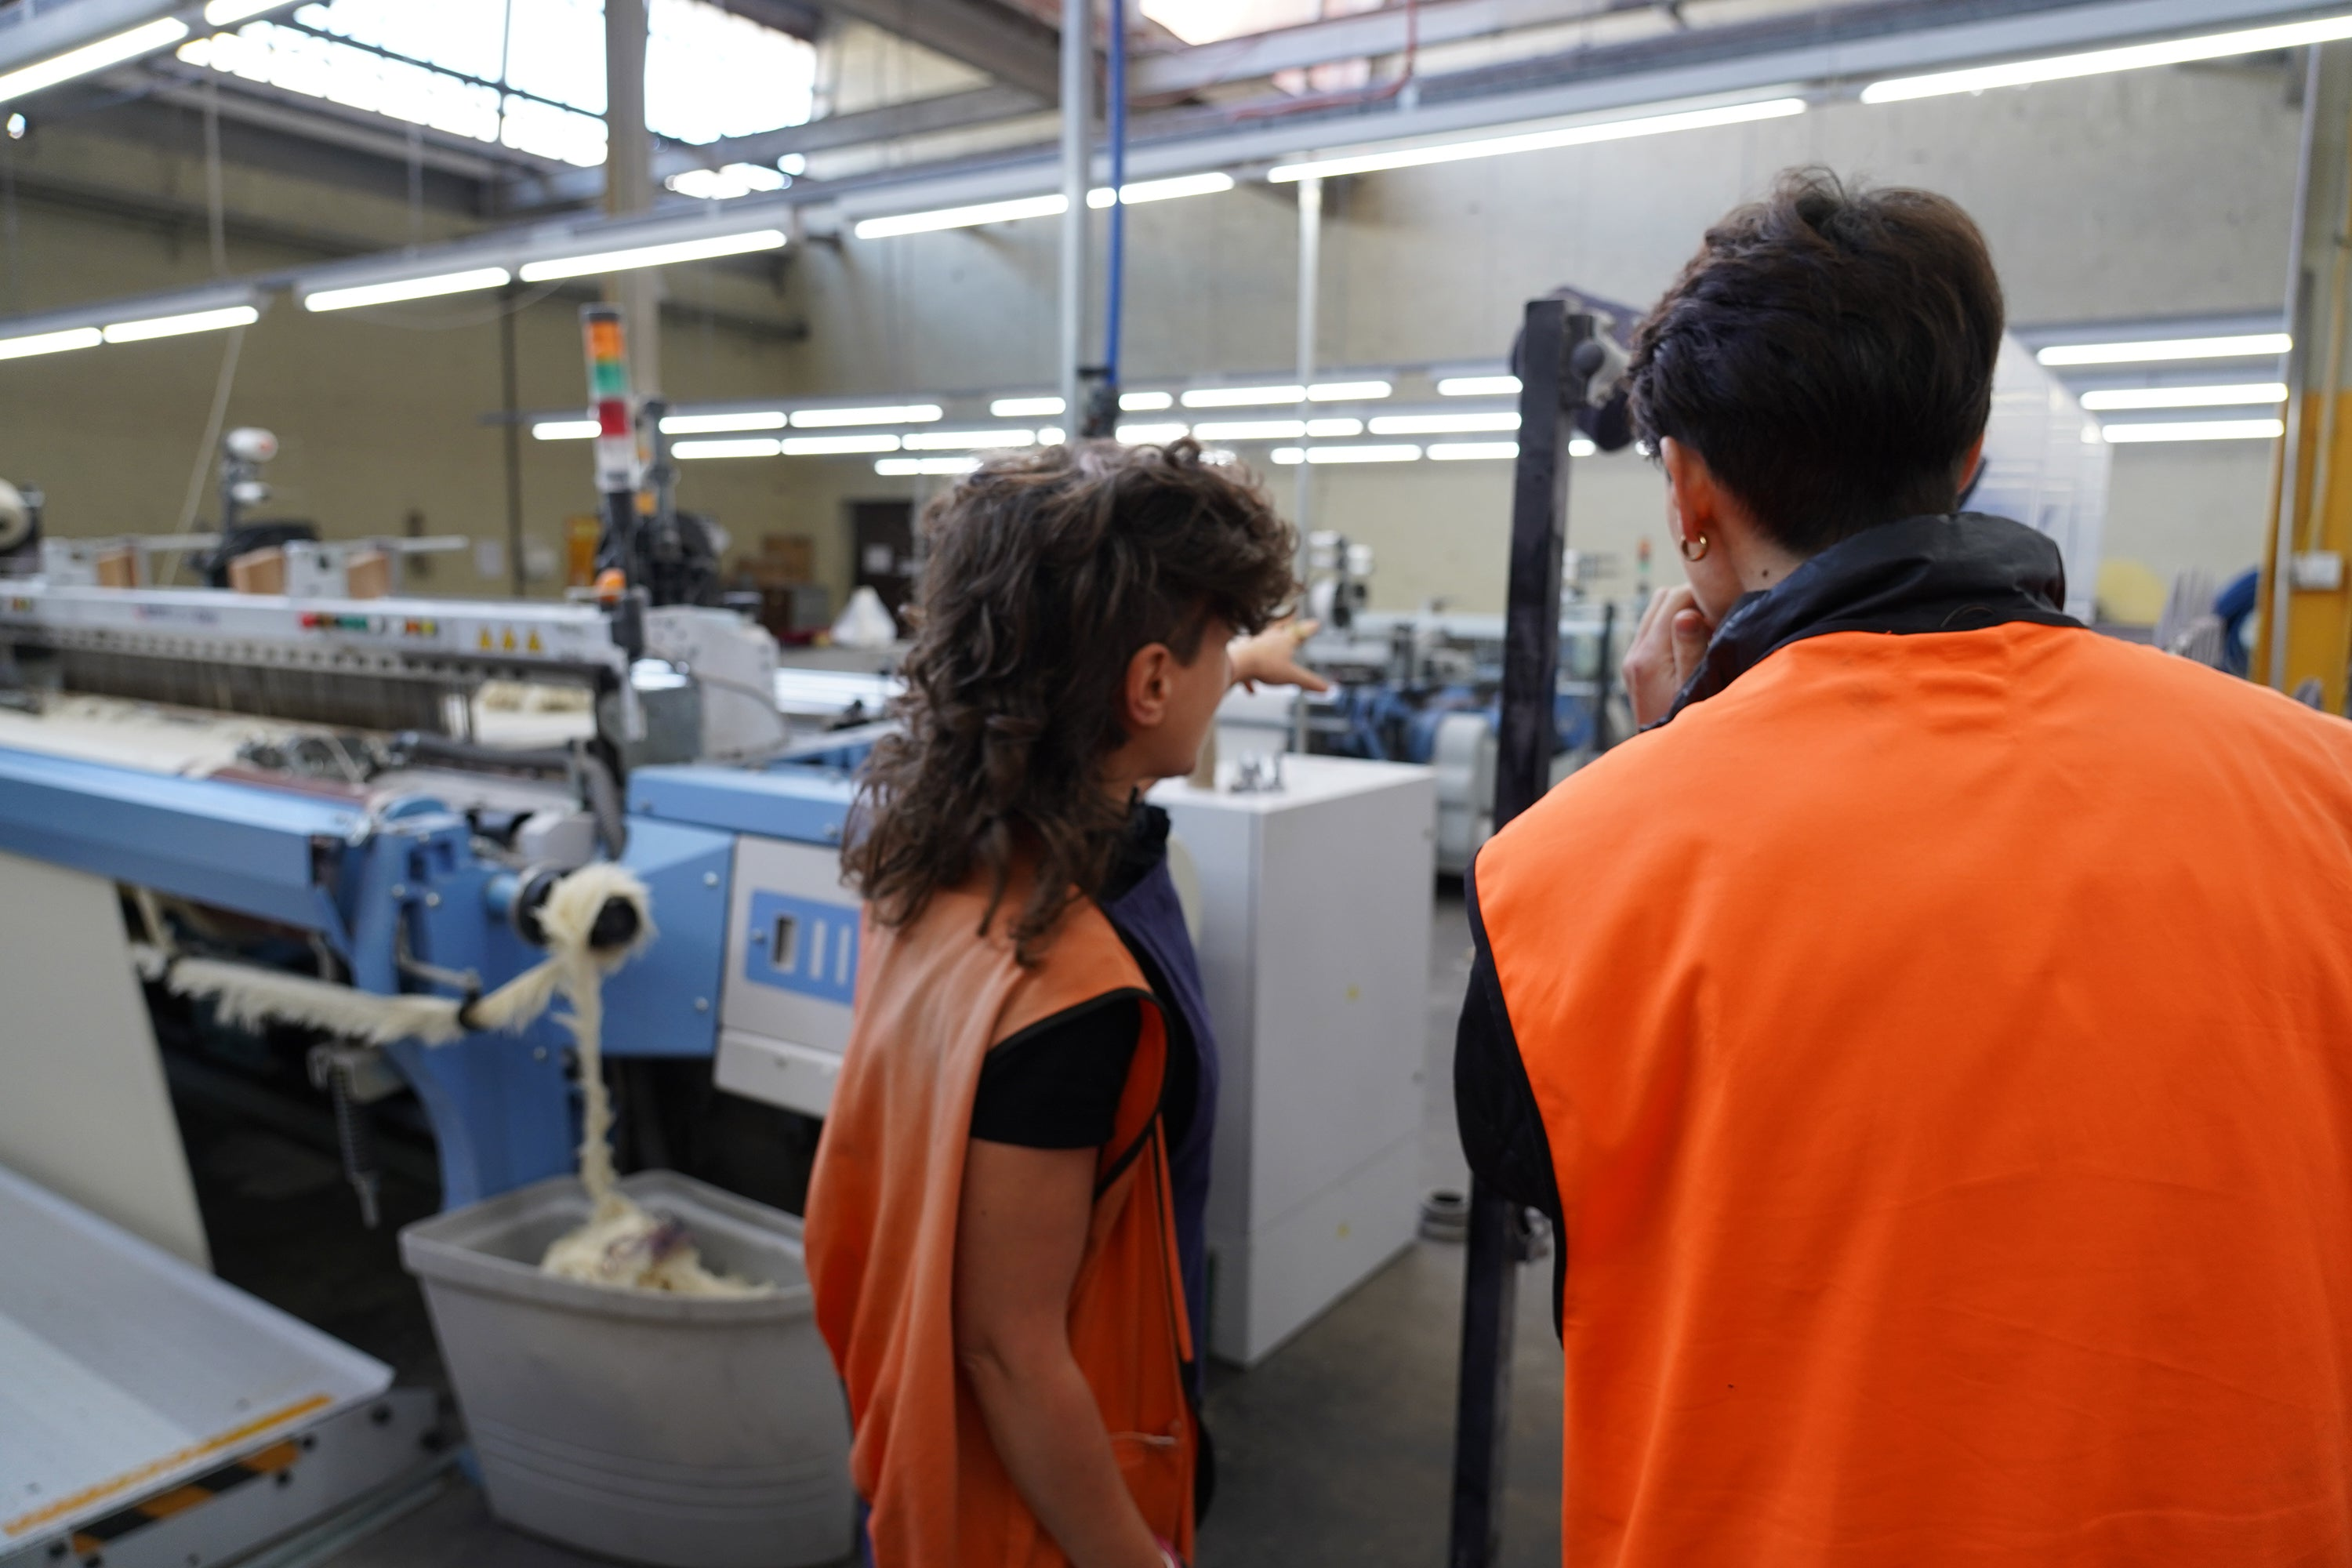 Ana showed us around the mill when Seljak Brand visited in March 2021.